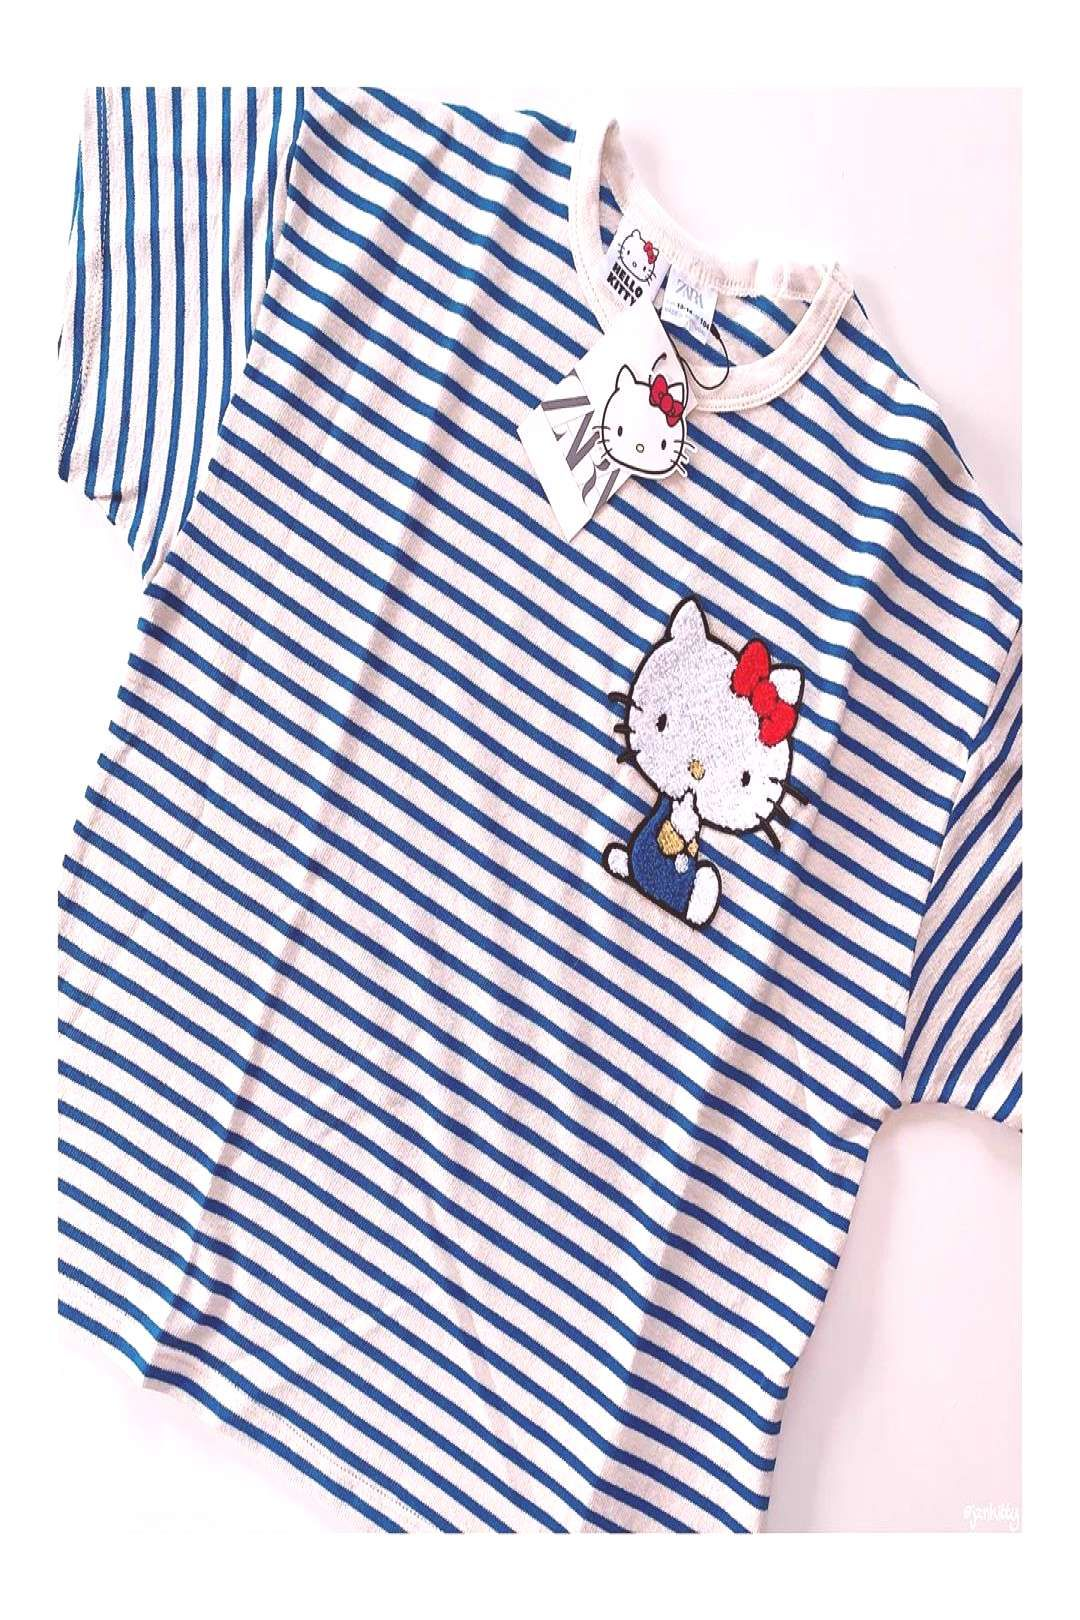 #collection #stripes #really #hello #kitty #zara #real #new #the #is #x new zara x hello kitty collection! the hello kitty is really realYou can find Zara kids and more on our website.new zara x hello kitty collection! the hello kitty is really...